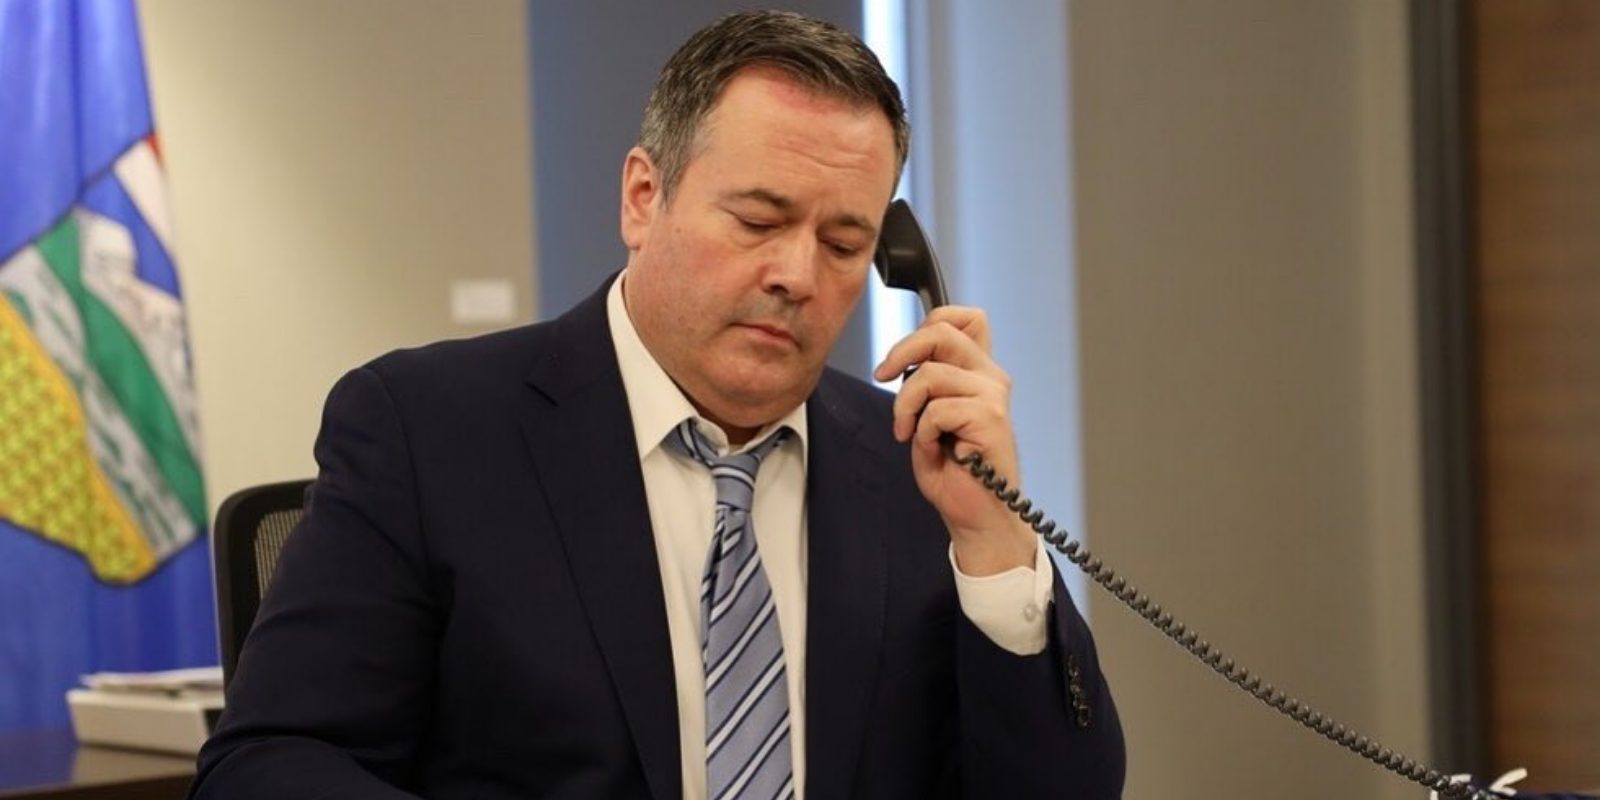 Jason Kenney reportedly threatened UCP caucus with snap election over lockdown revolt